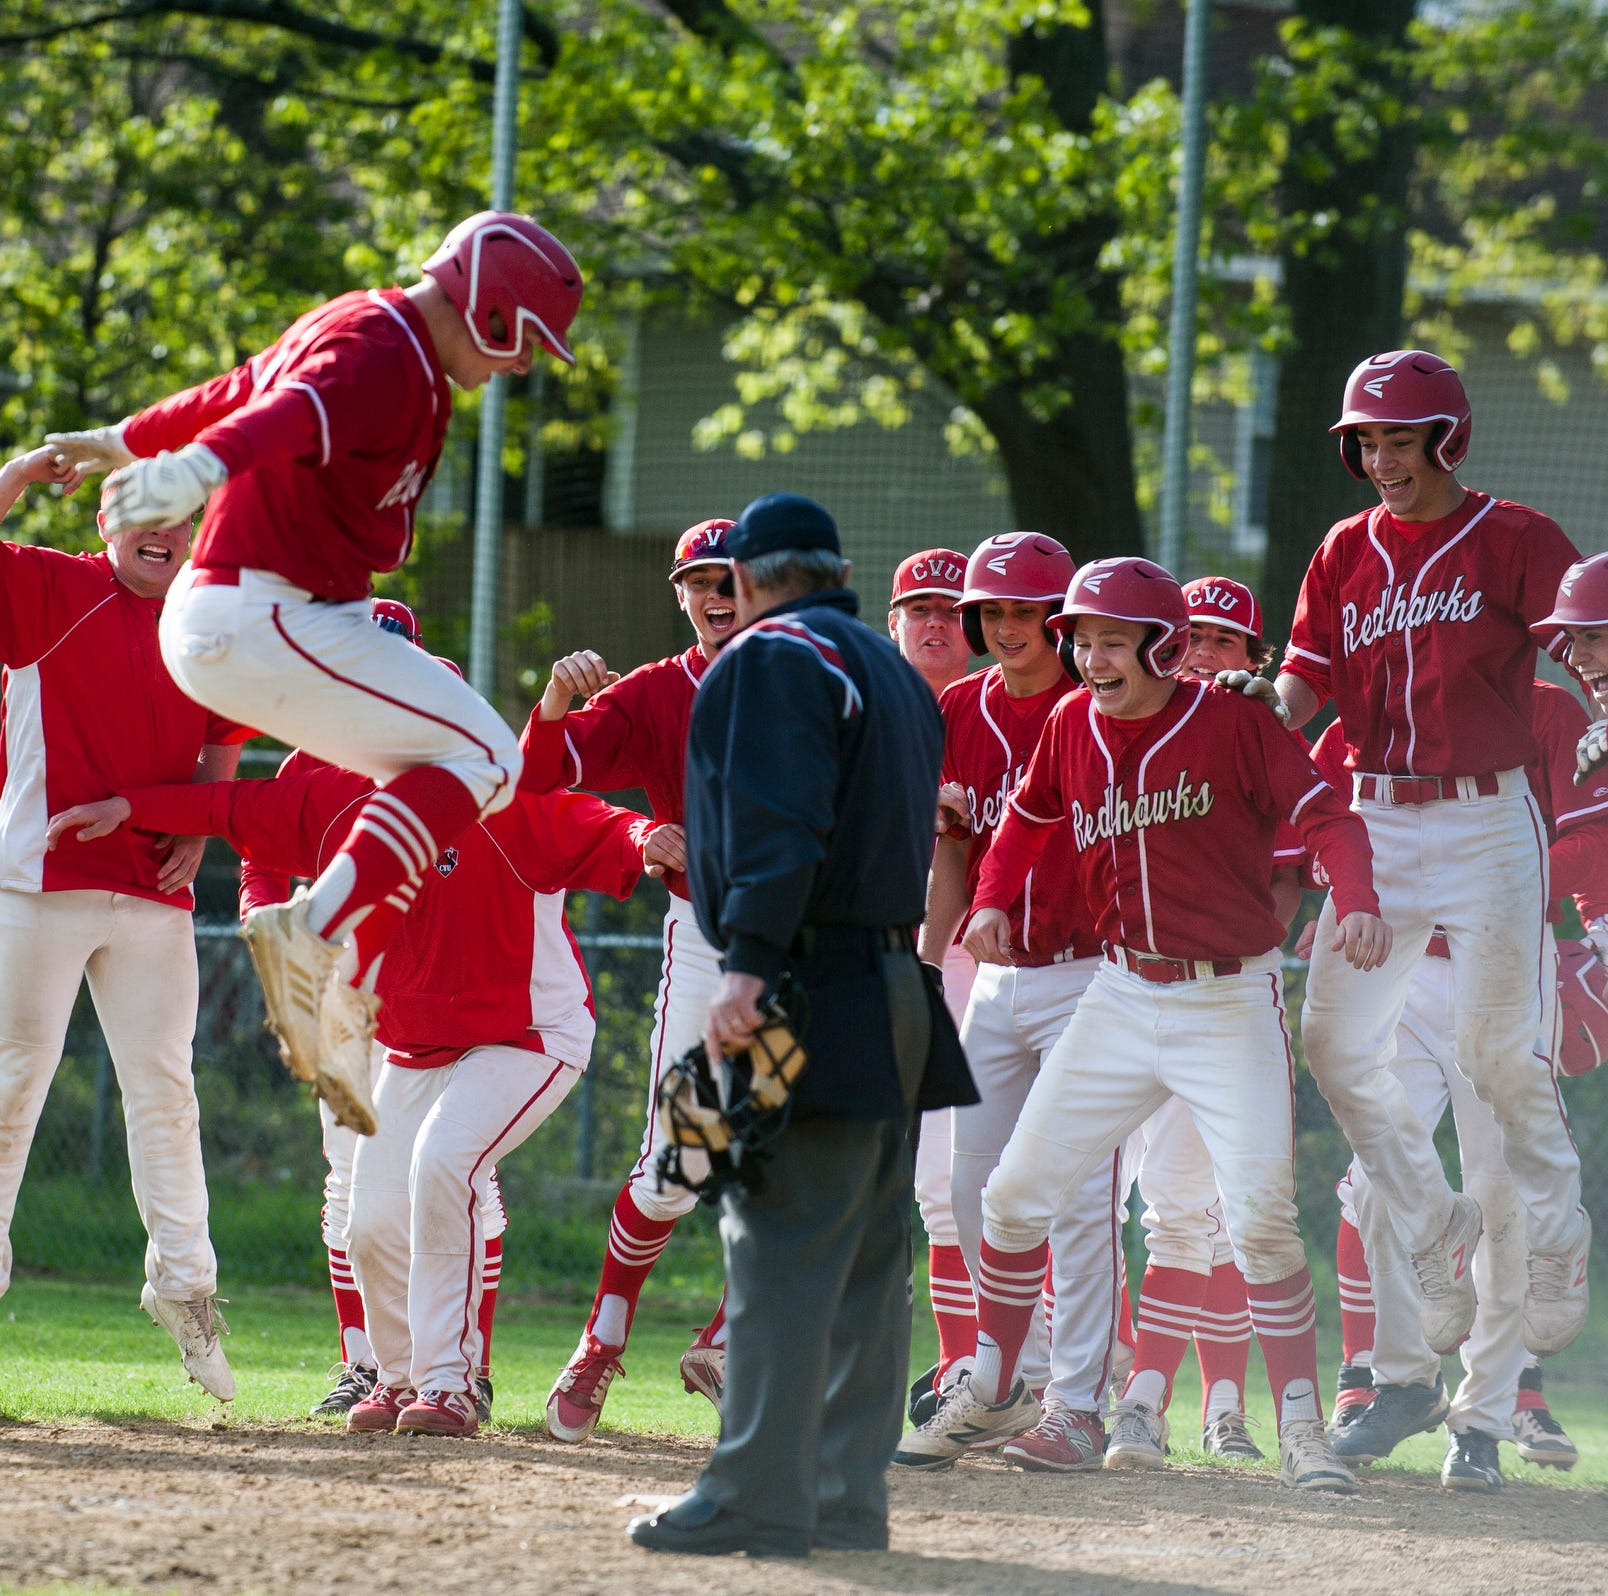 Tuesday's H.S. highlights: Johnson's 3-run blast lifts CVU past South Burlington